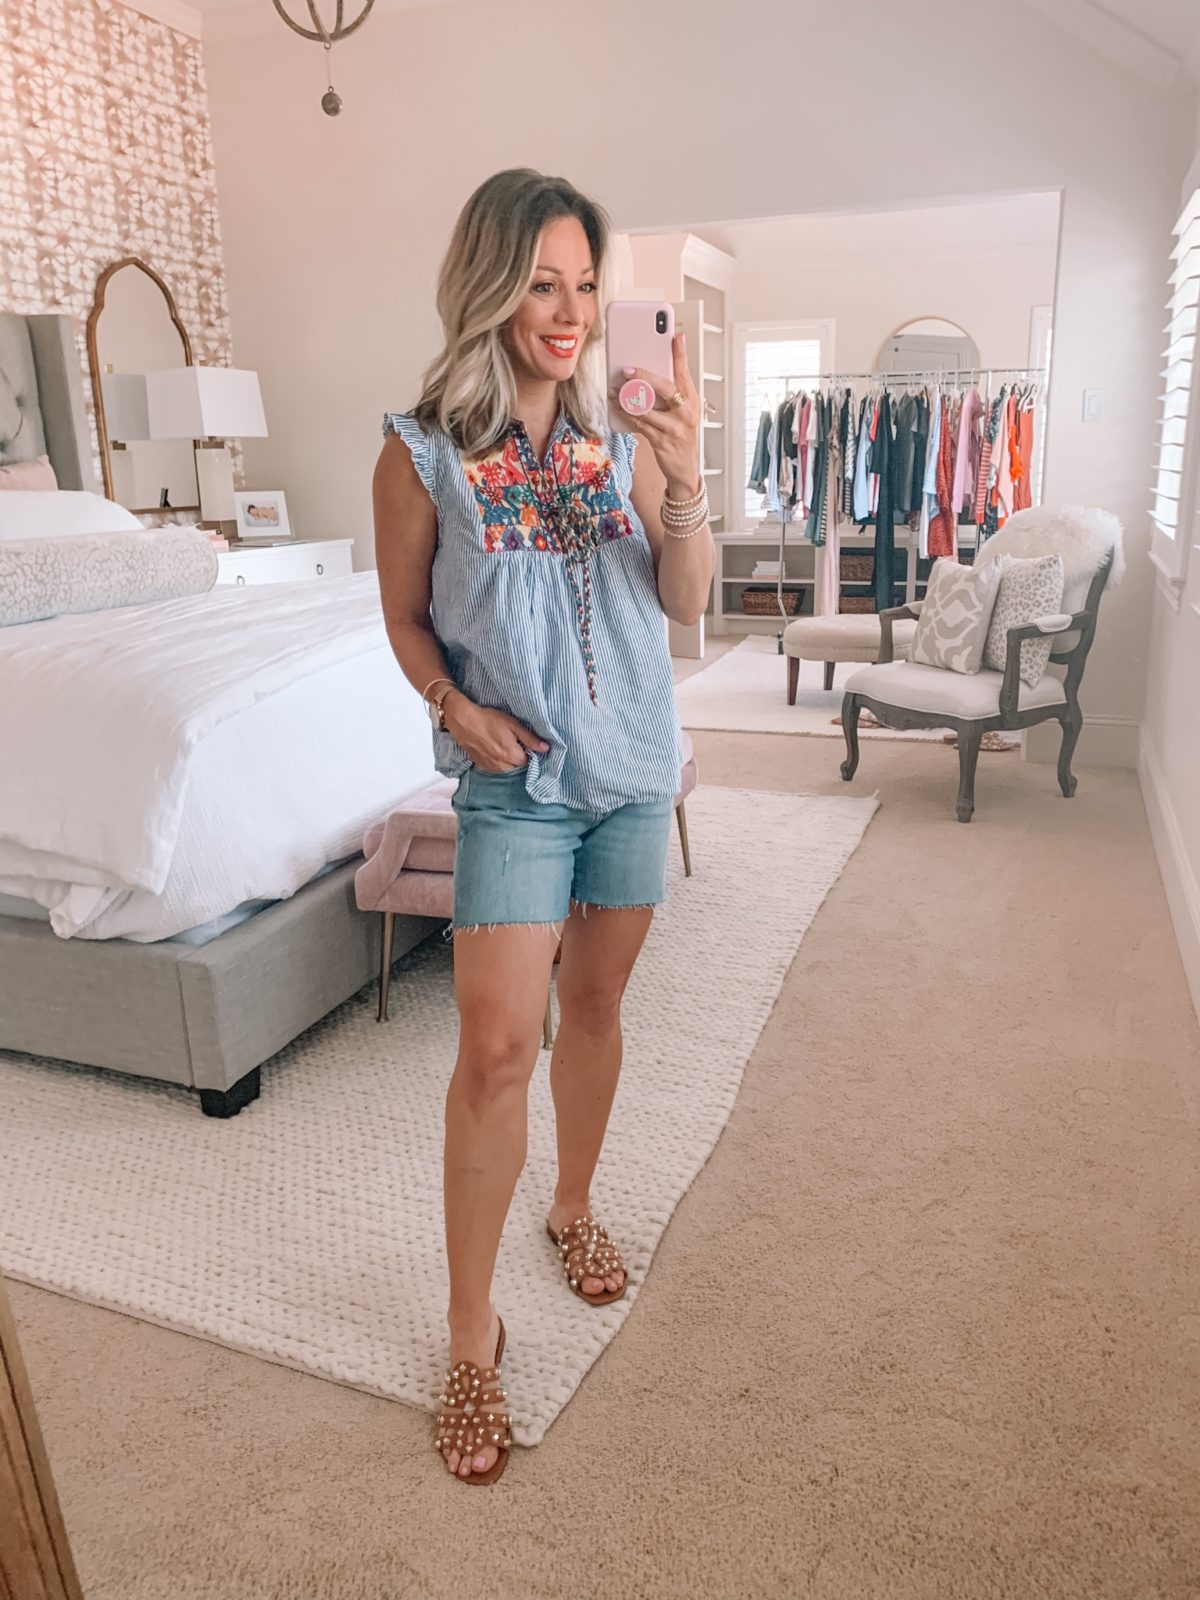 Amazon Fashion Finds, Embroidered Top, Jeans Shorts, Studded Sandals